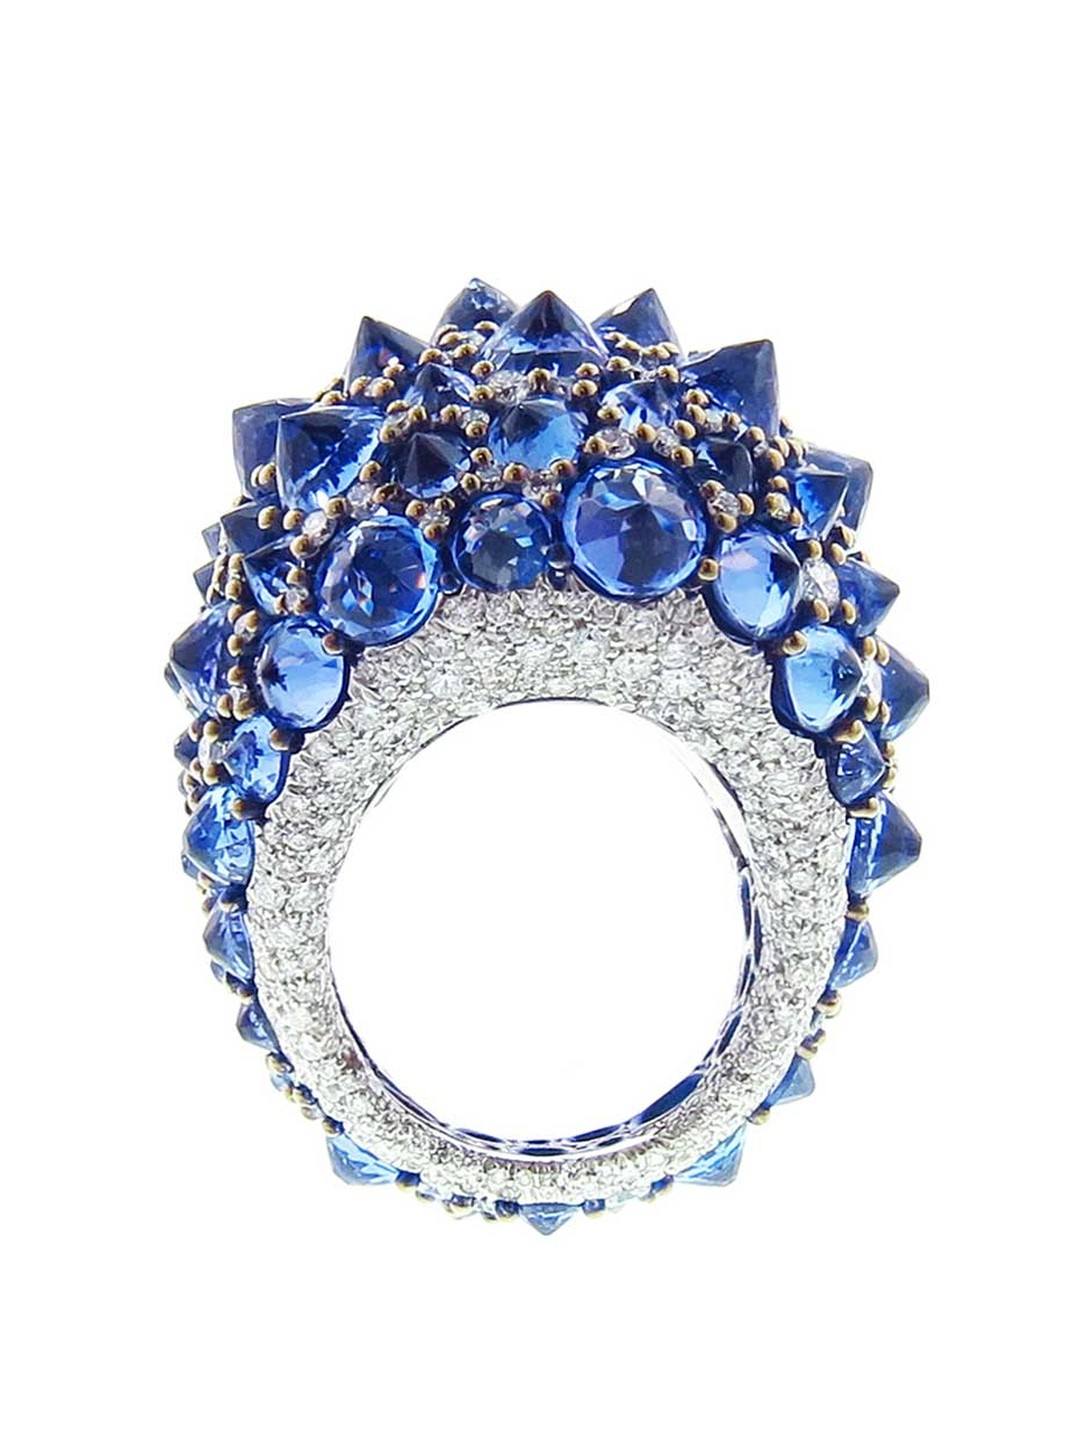 Available at Ylang23.com, Arunashi's white gold ring features a total of 29ct of inverted tanzanite stones scattered amongst 4.36ct of diamonds.